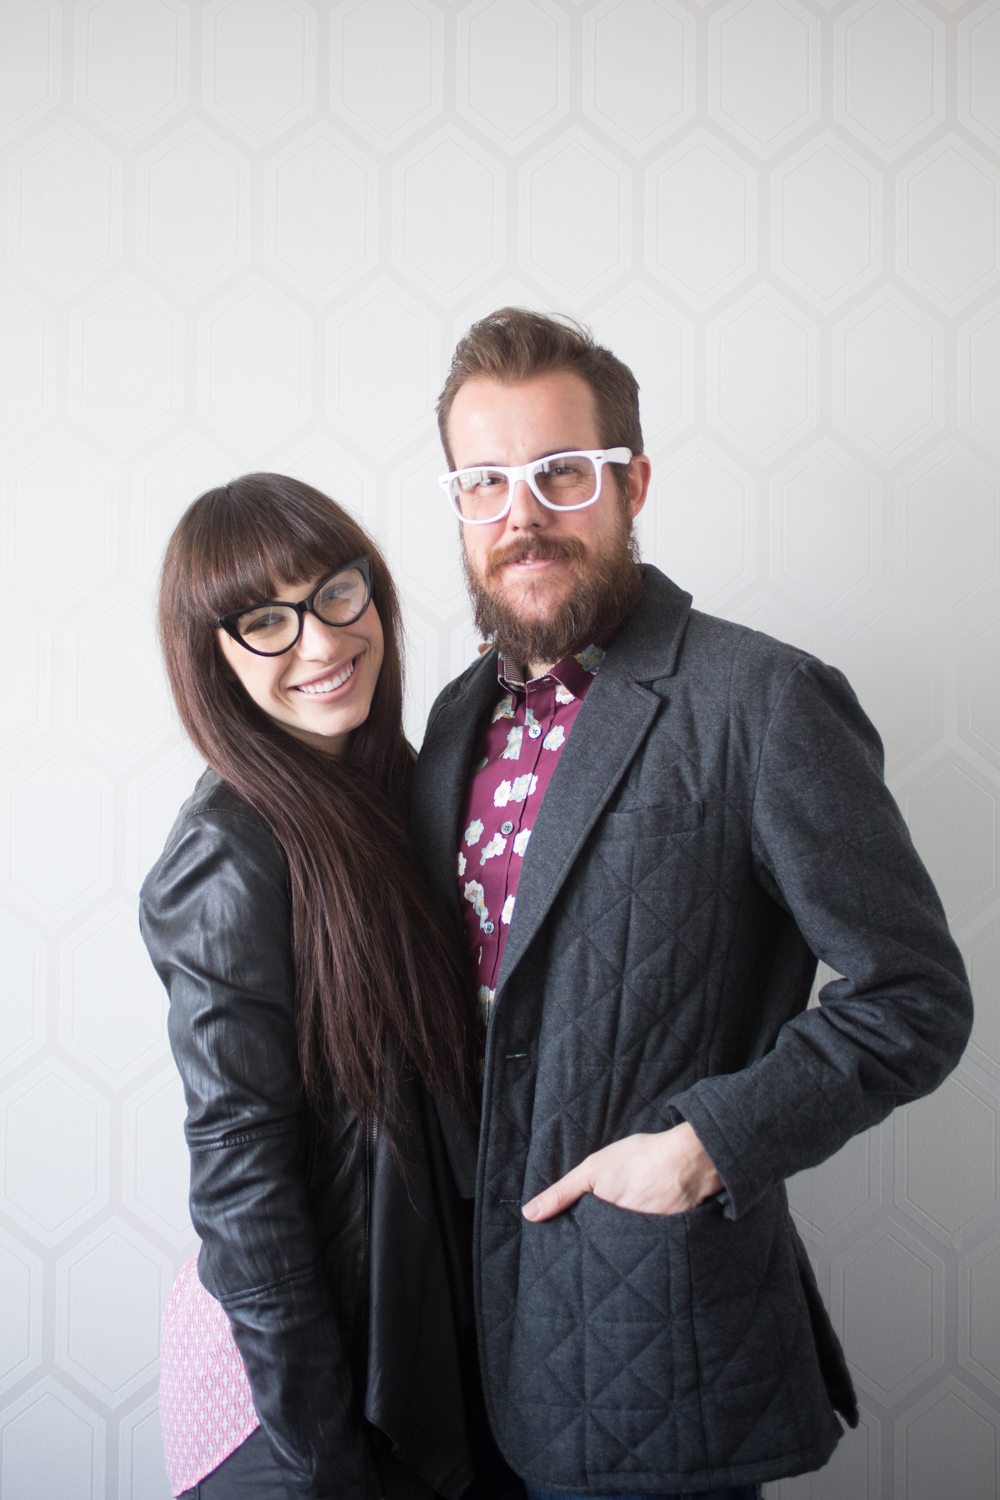 Couples in Glasses